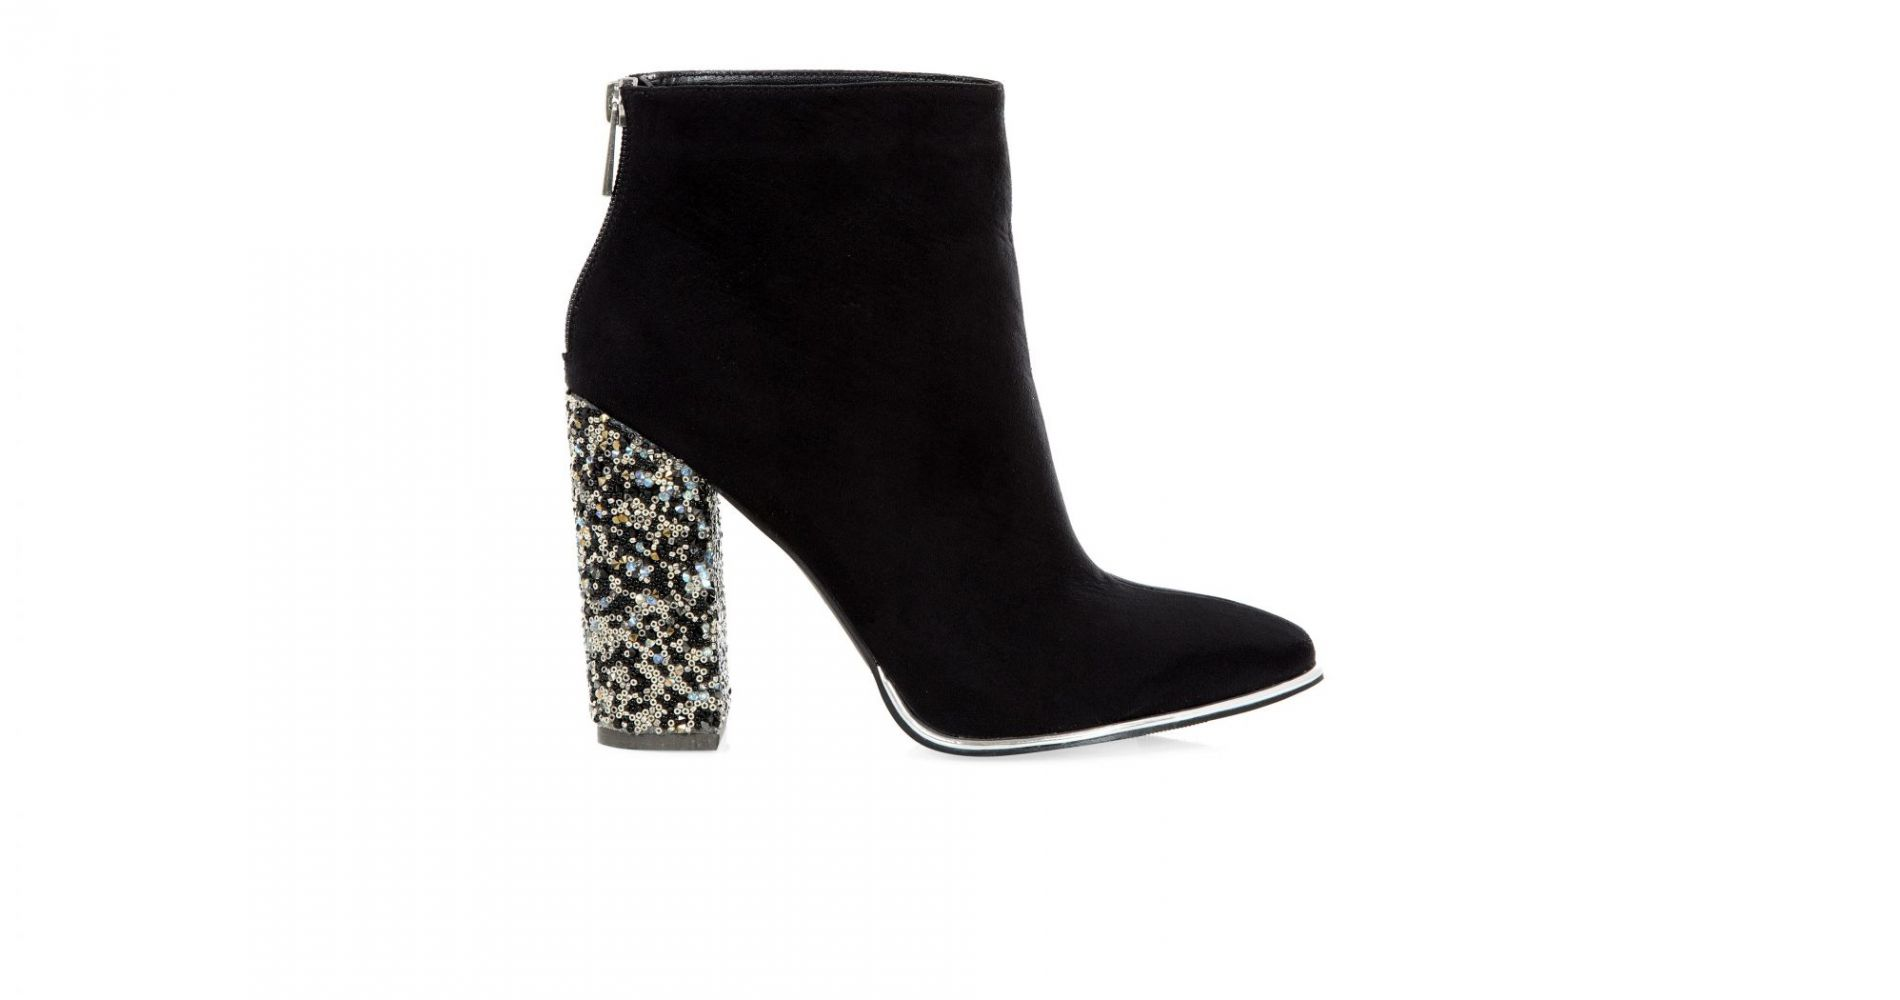 Les bottines must-have de l'hiver 2015